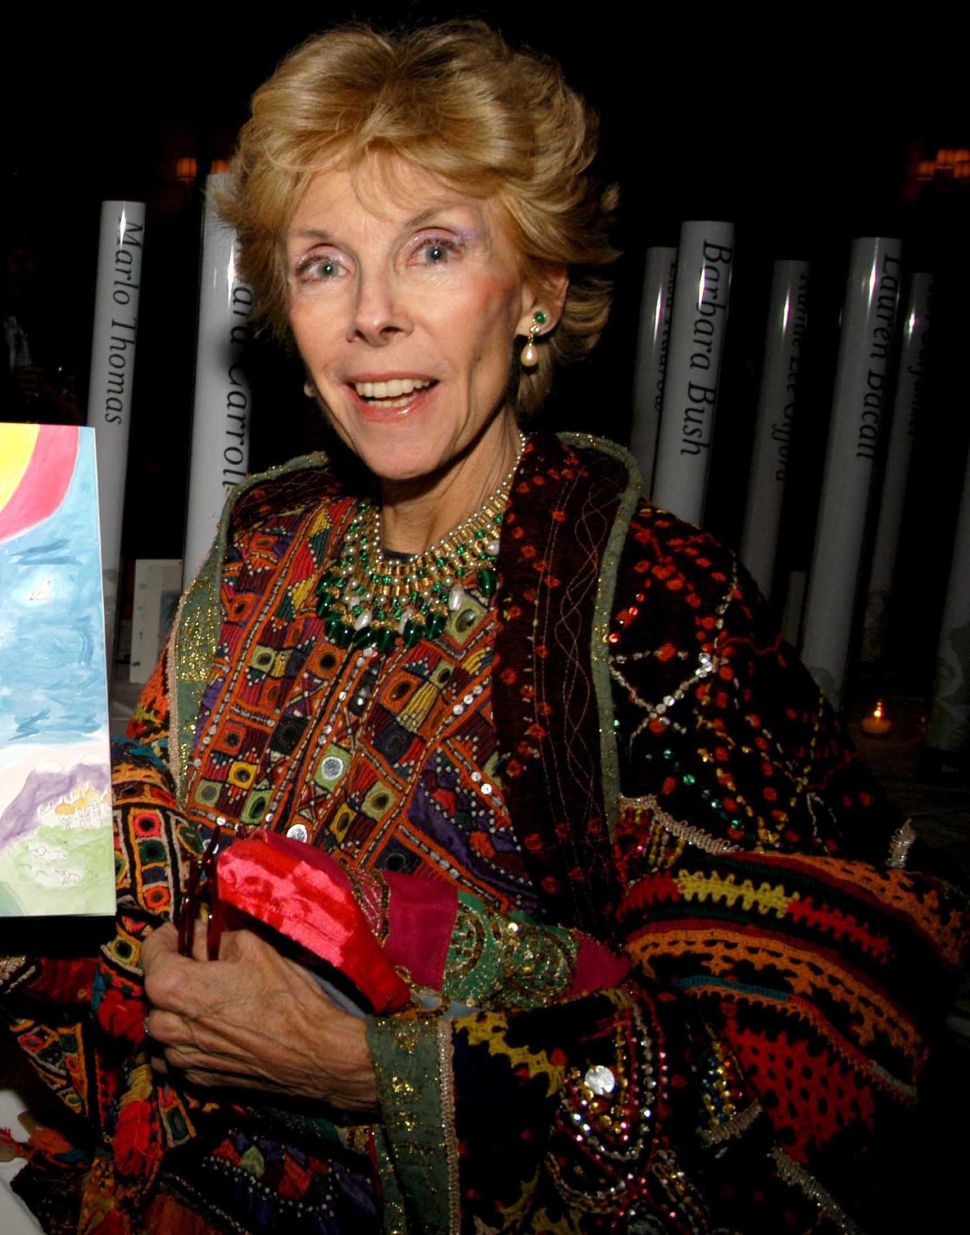 Late Baroness Betsy von Furstenberg's Penthouse Sells for $7.5M